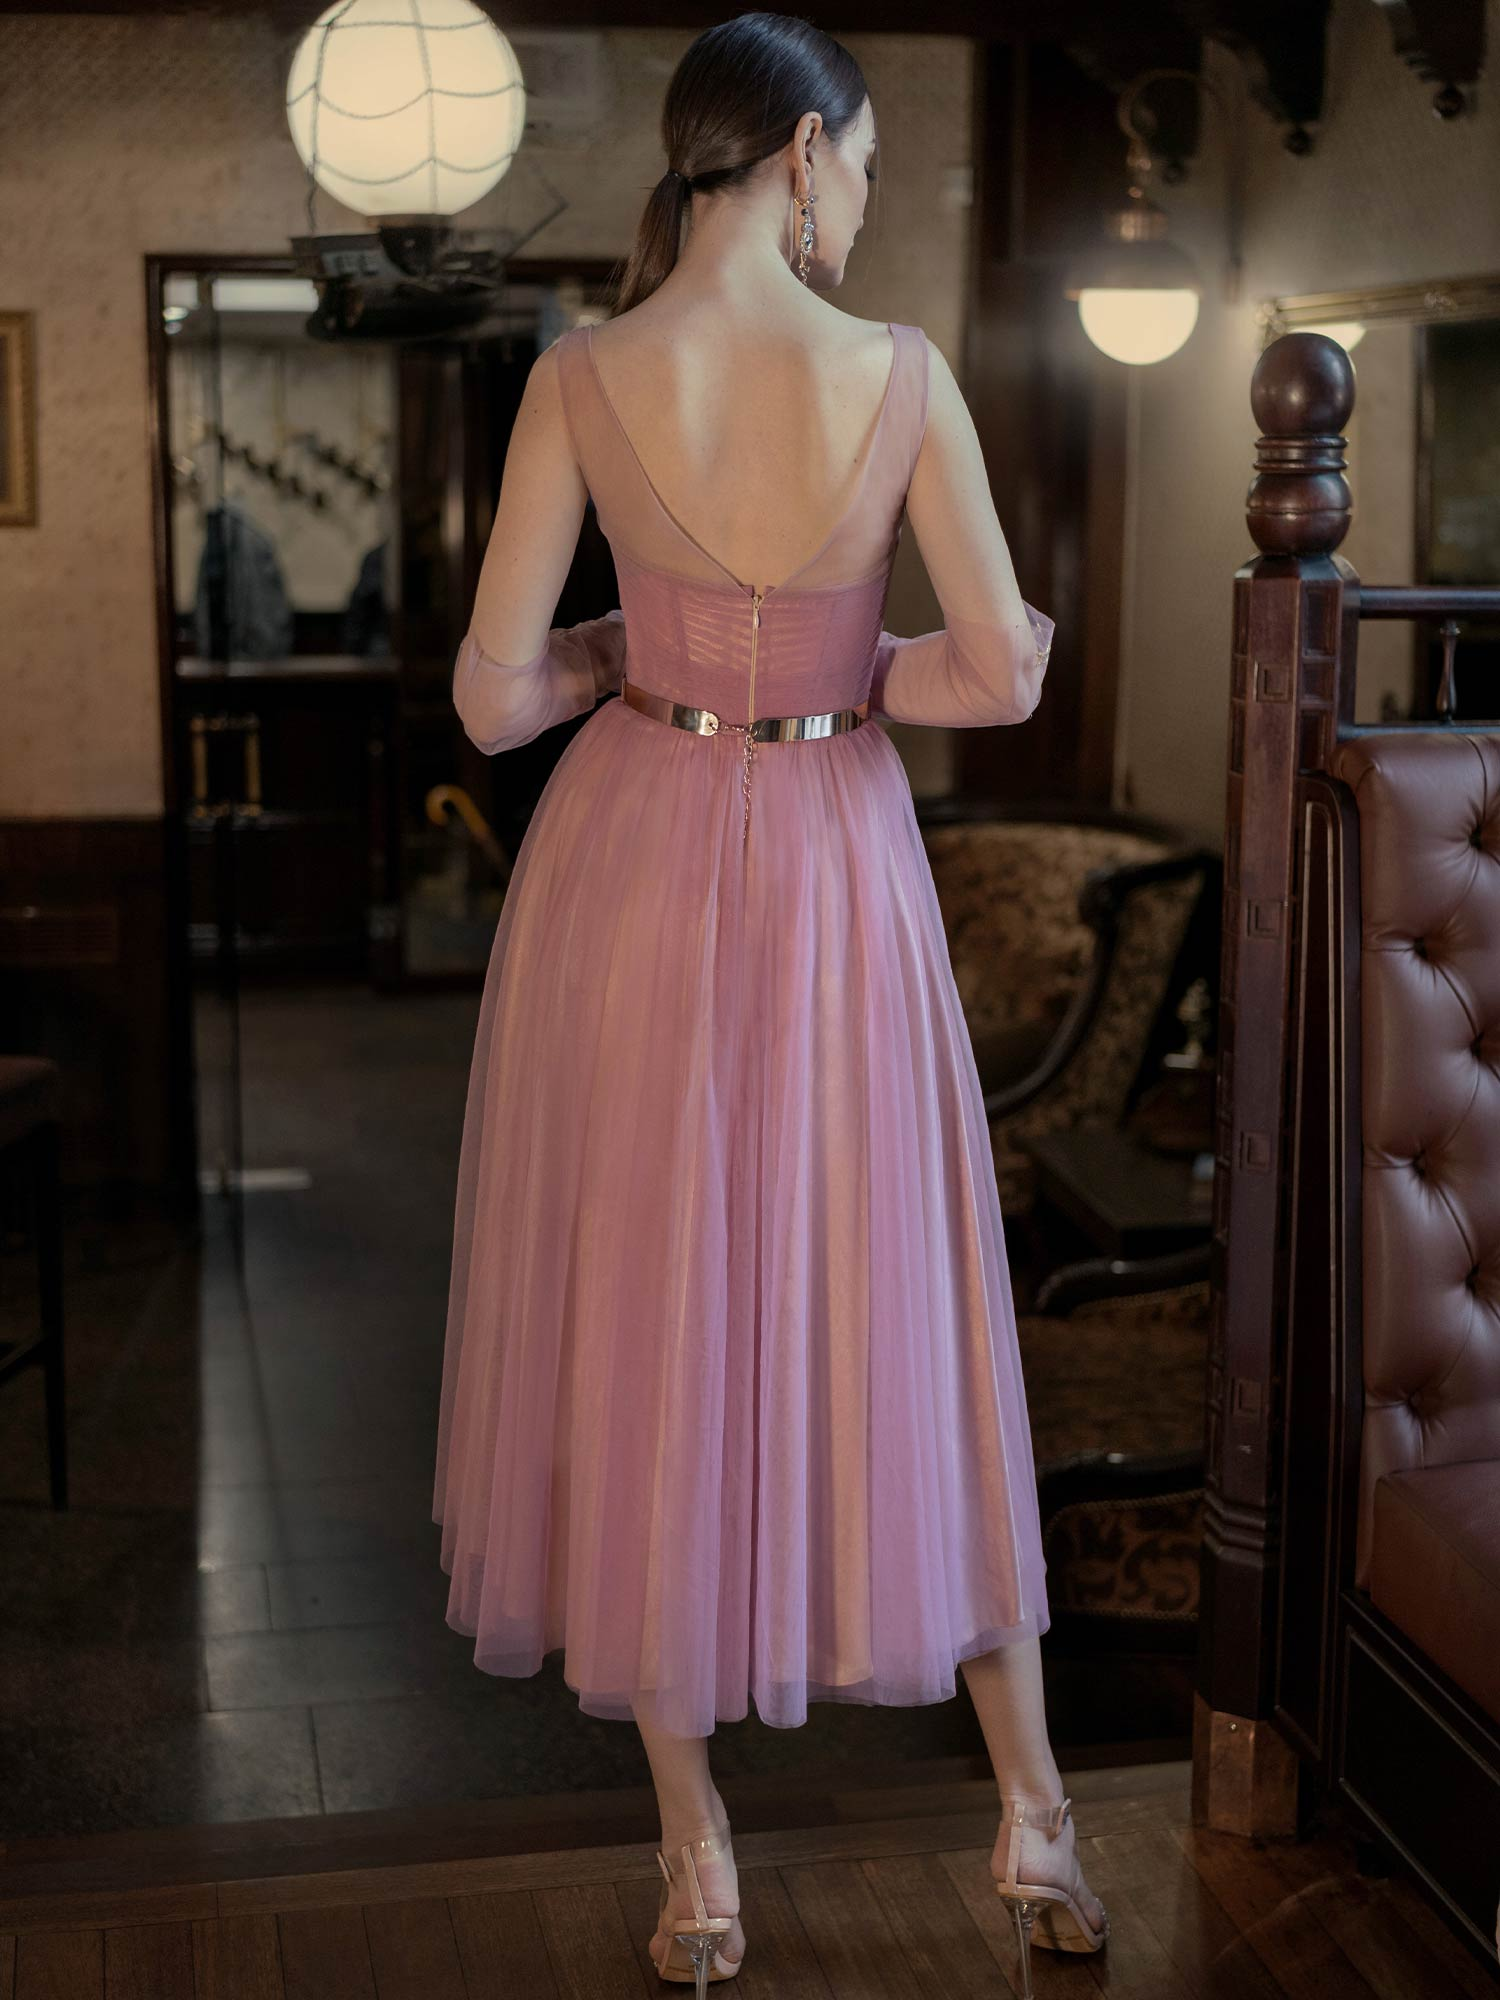 Style #623b, available in nude-azure, nude-powder, nude-cherry, nude-black, nude-blue, nude-pink, nude-ivory, nude-purple